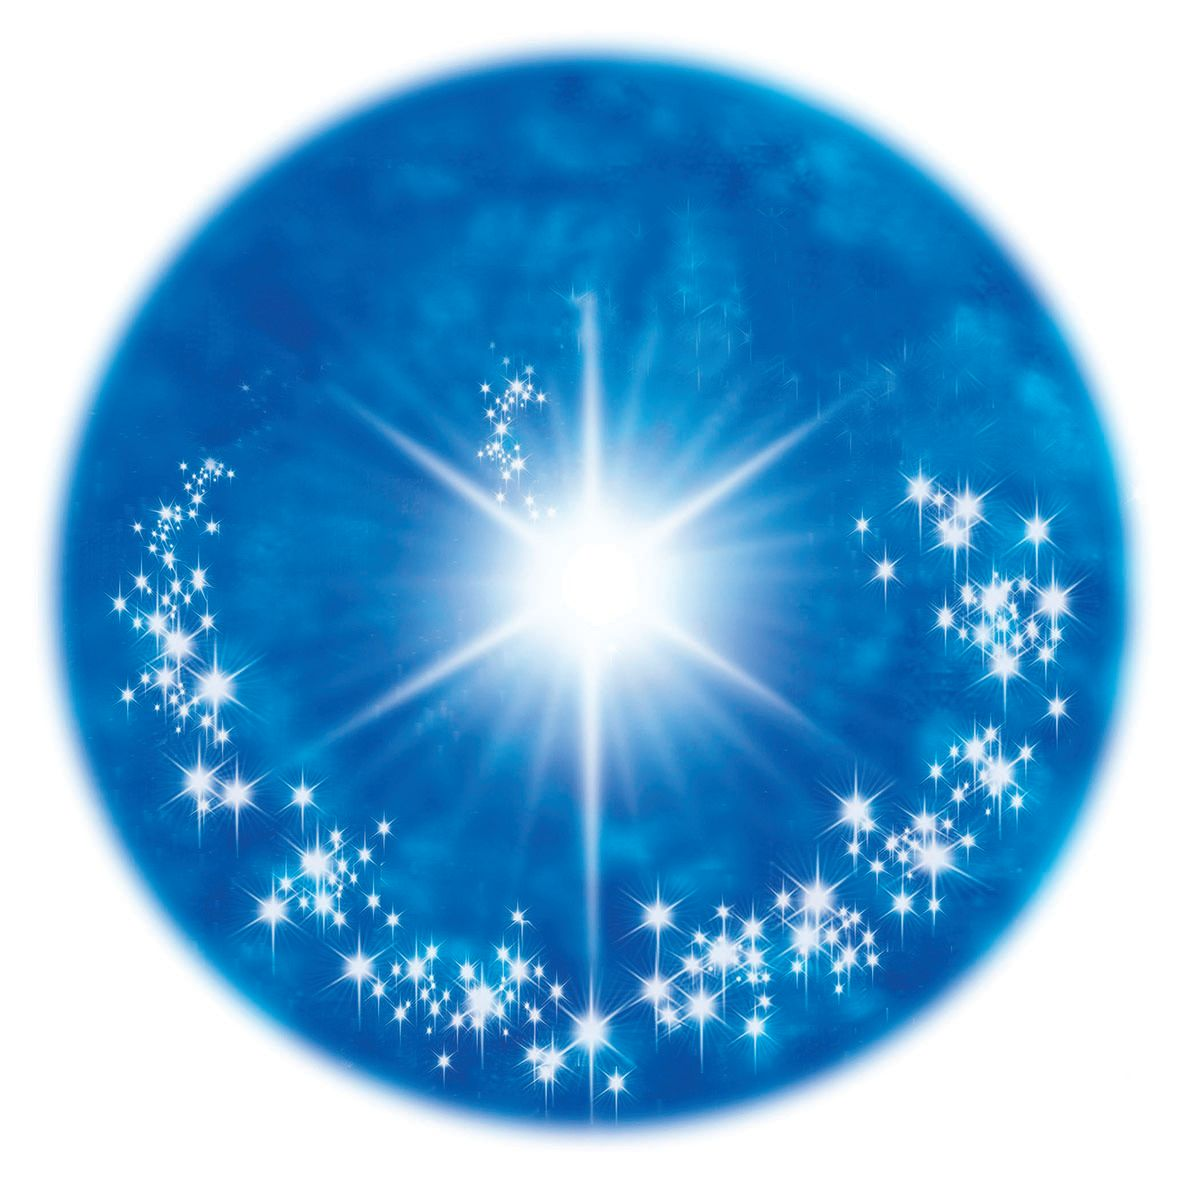 Eckankar Events - Perth and Albany, Western Australia